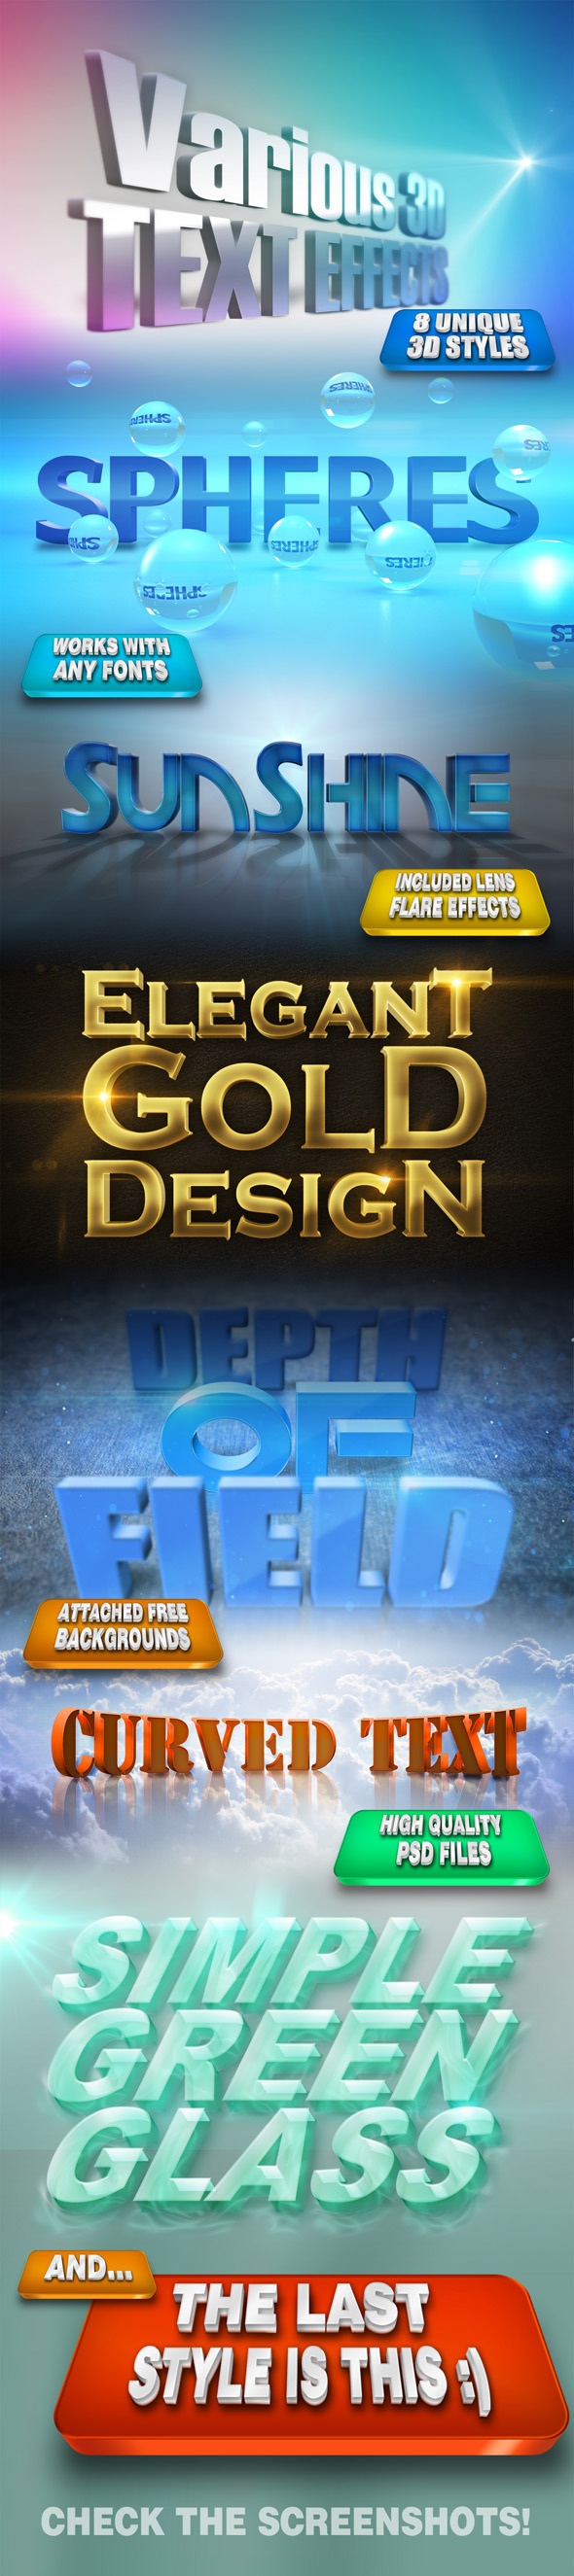 Various 3D Text Effects - Text Effects Actions